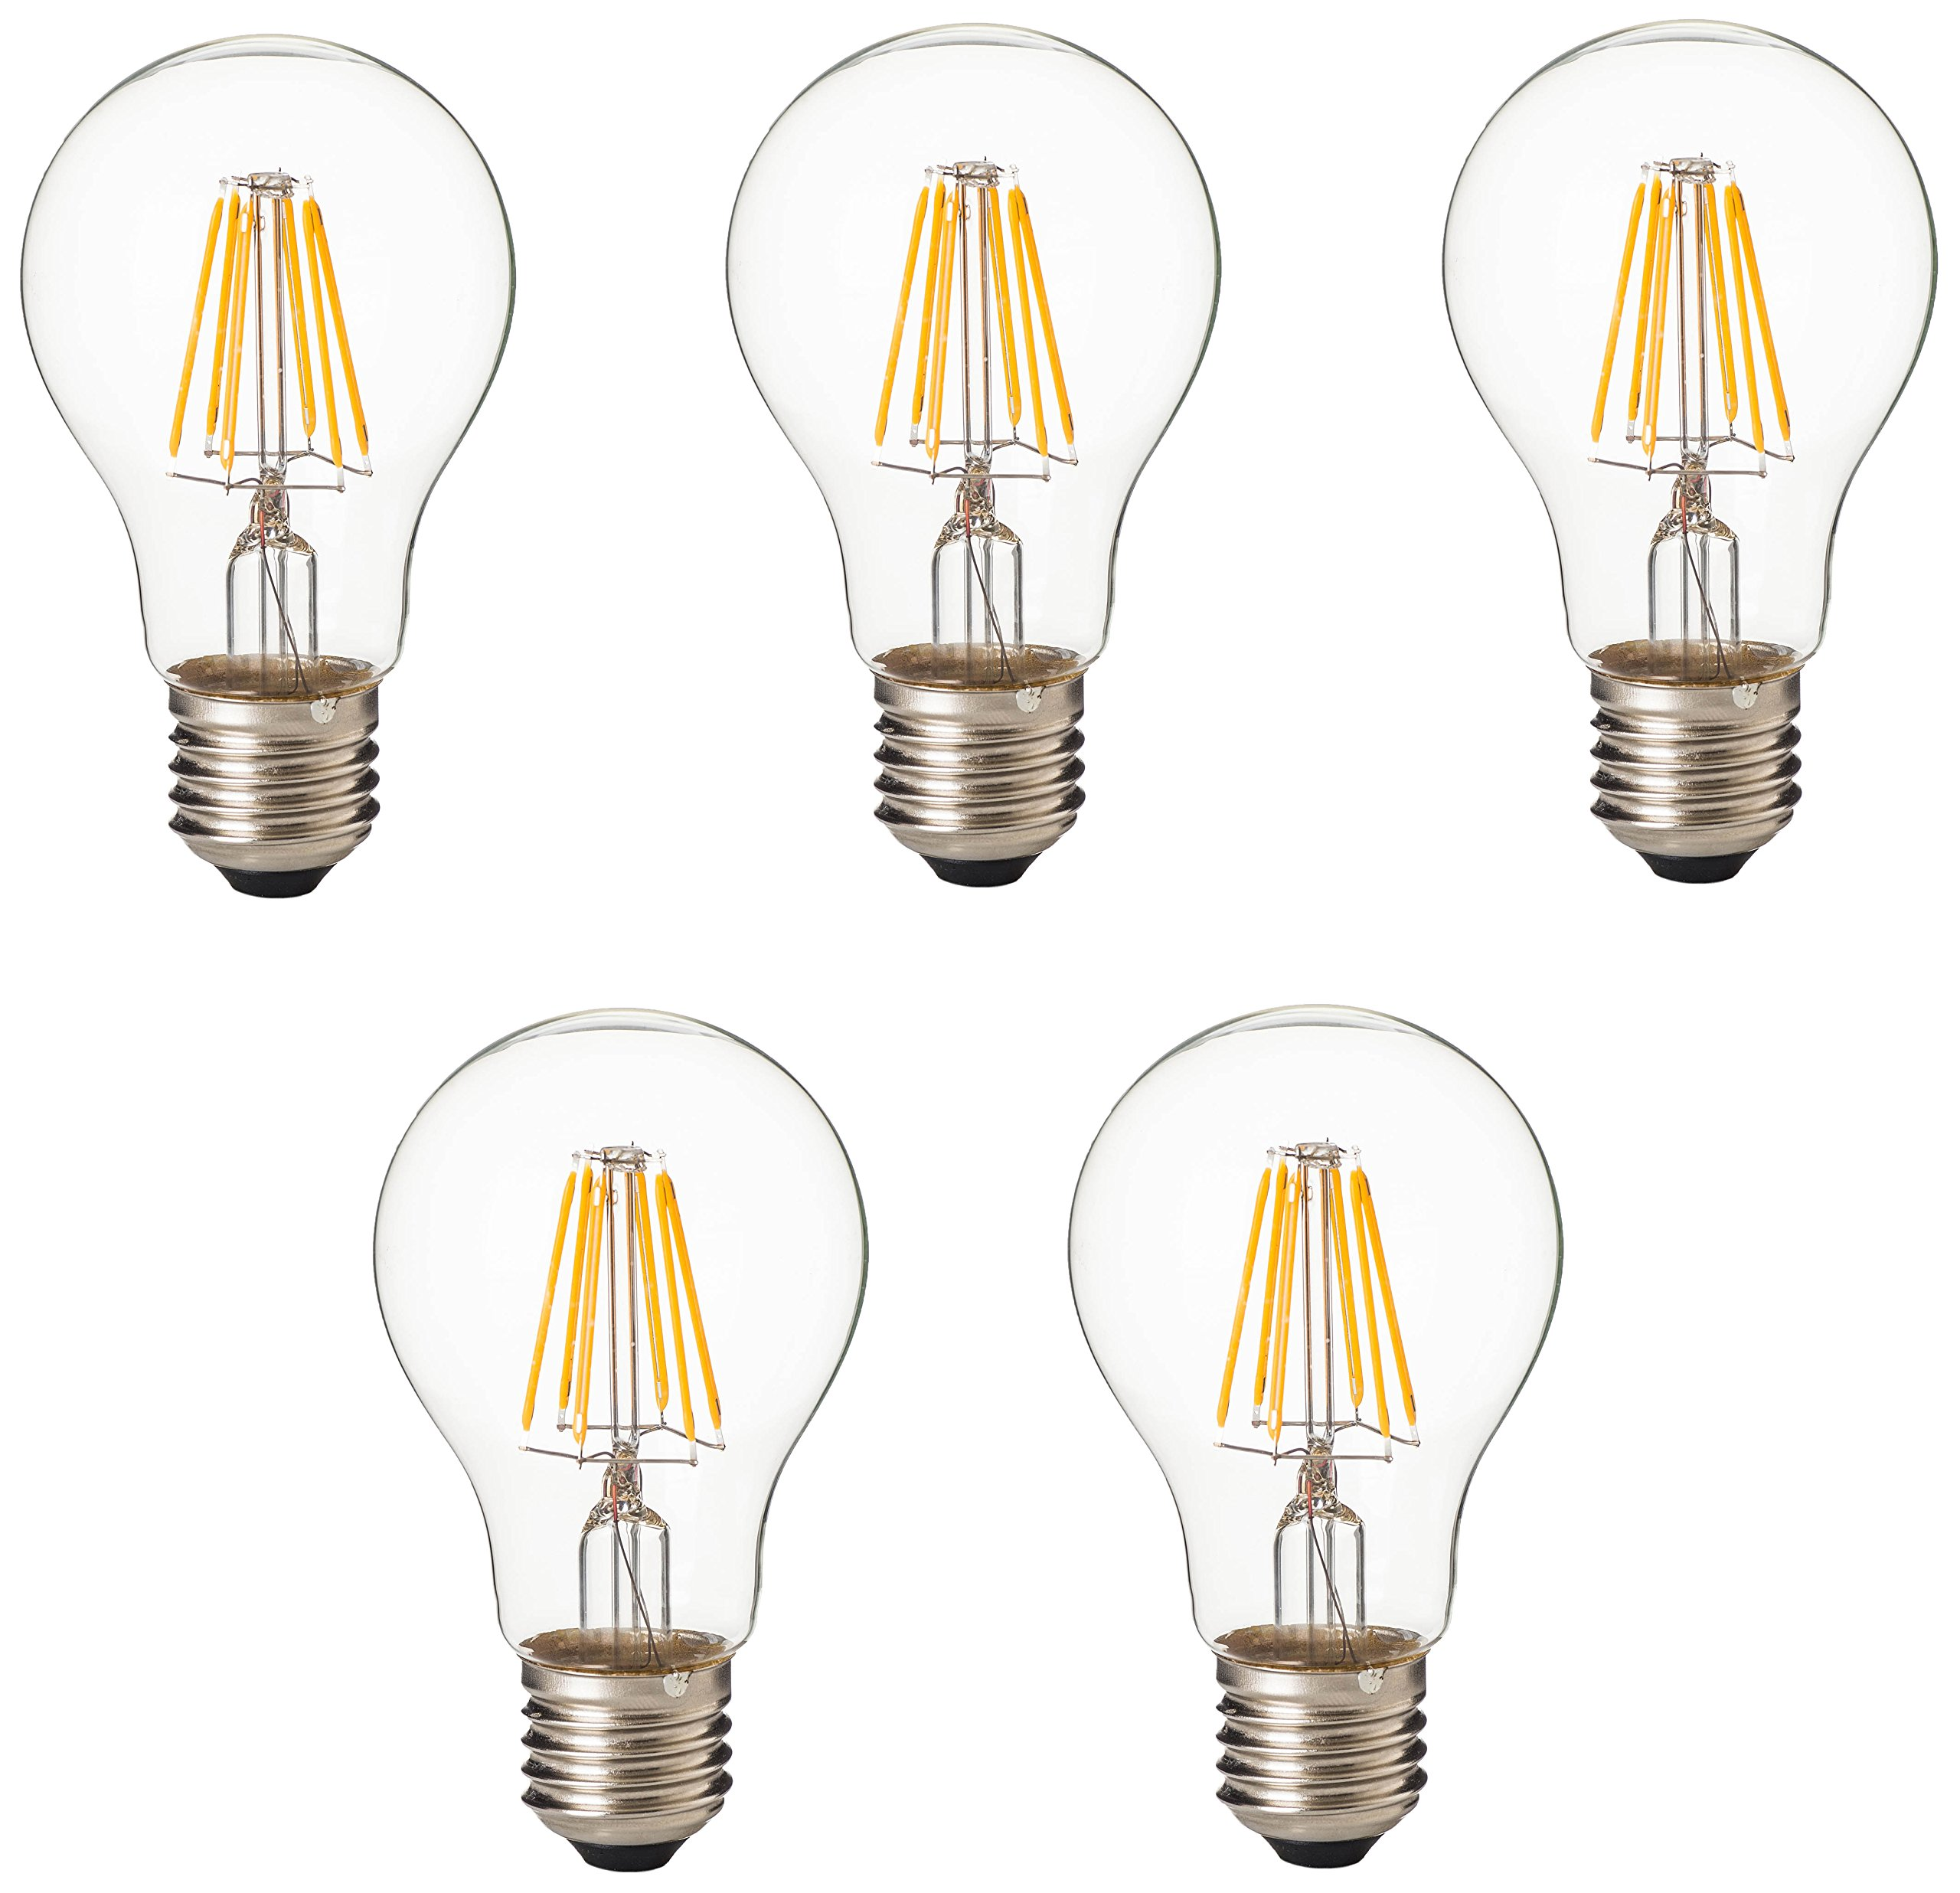 Artiva USA A21-12TDM-E26-27-5 LED Bulb 100W Replacement 12W Dimmable (5 Set), 12 W, Chrome